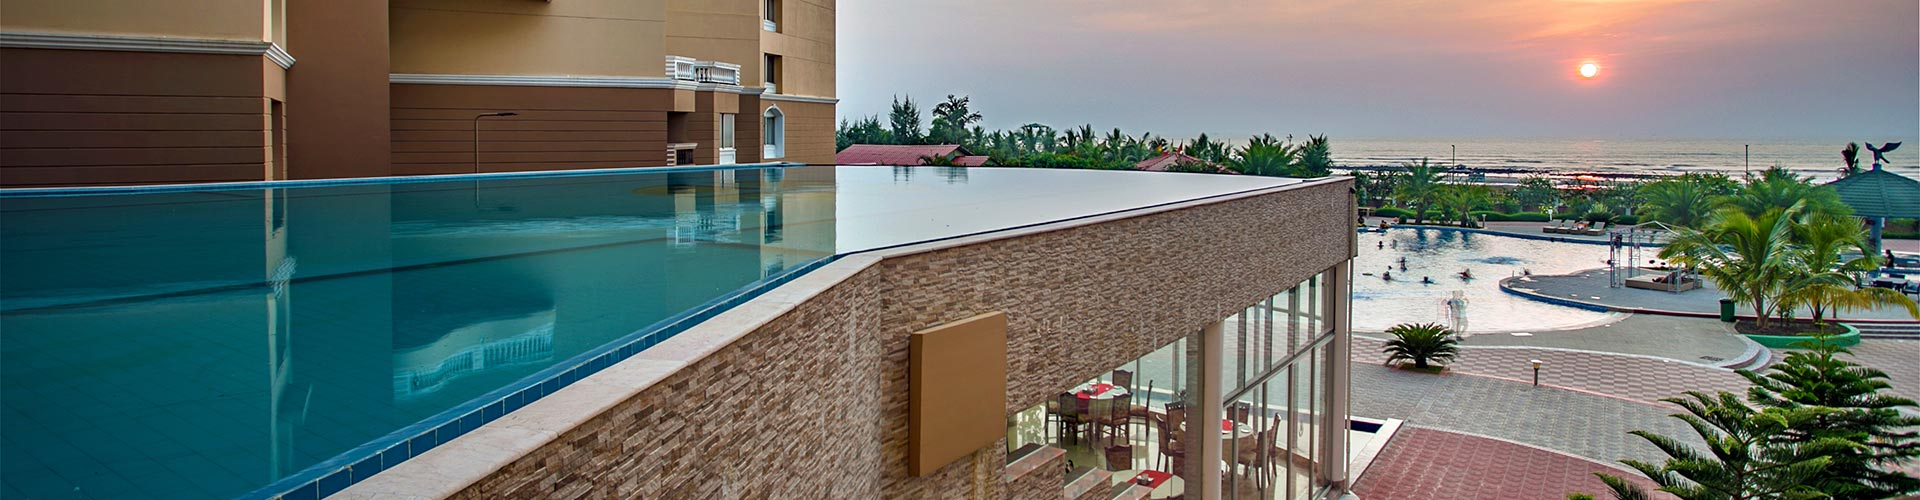 Cox's Bazar Hotels and Resorts